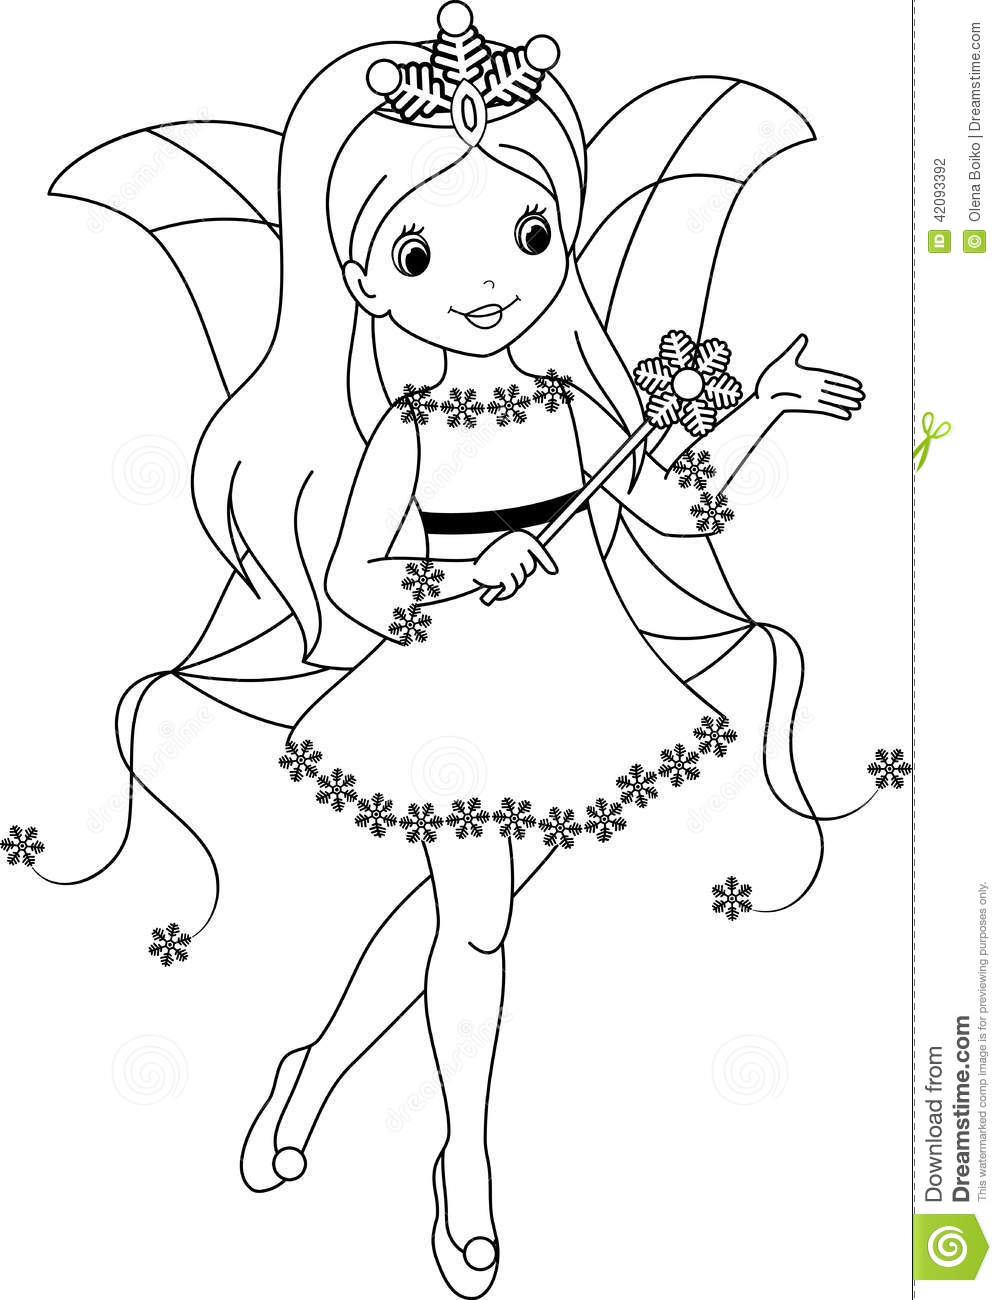 Free Tooth Fairy Coloring Pages Coloring Page